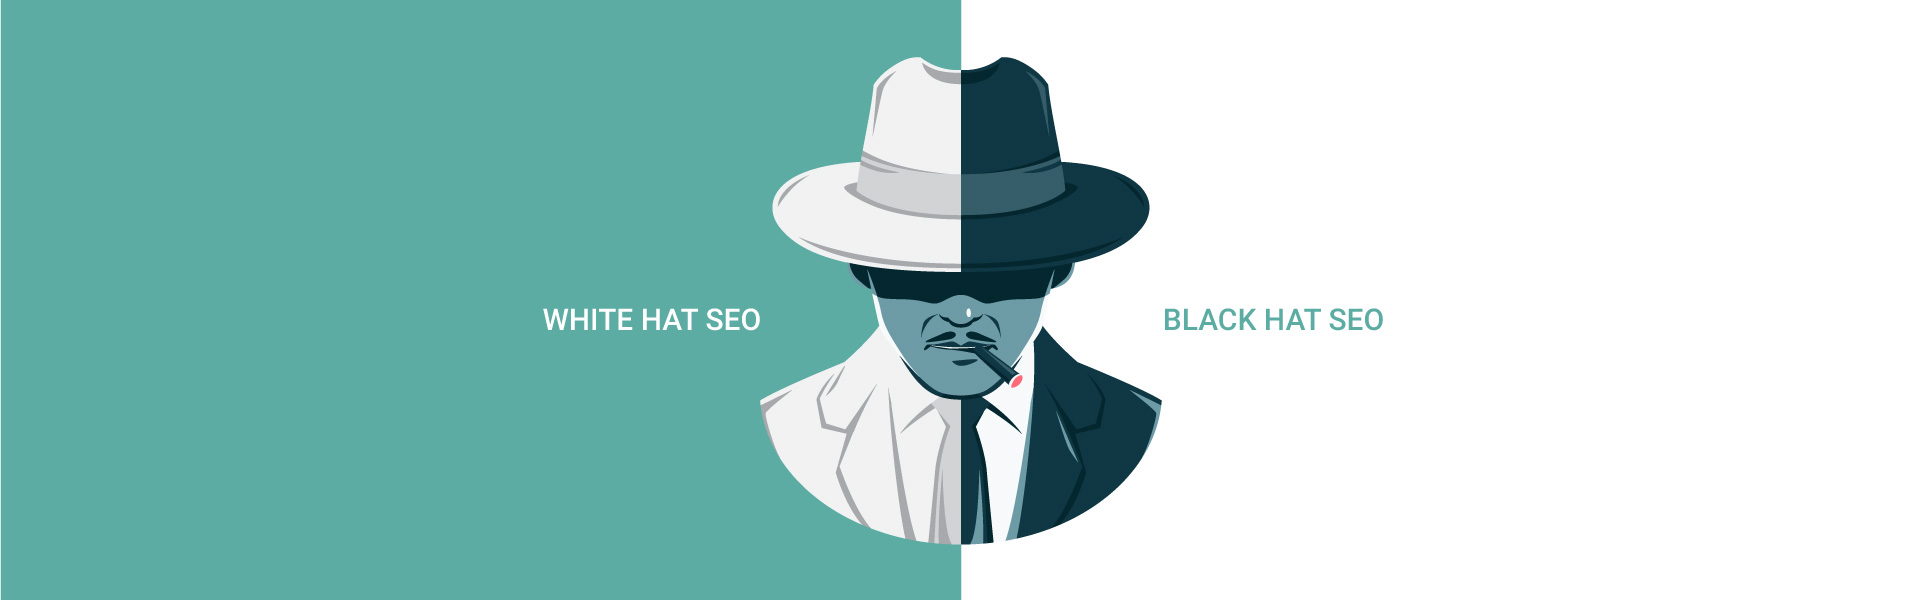 seo-black-hat-e-seo-white-hat